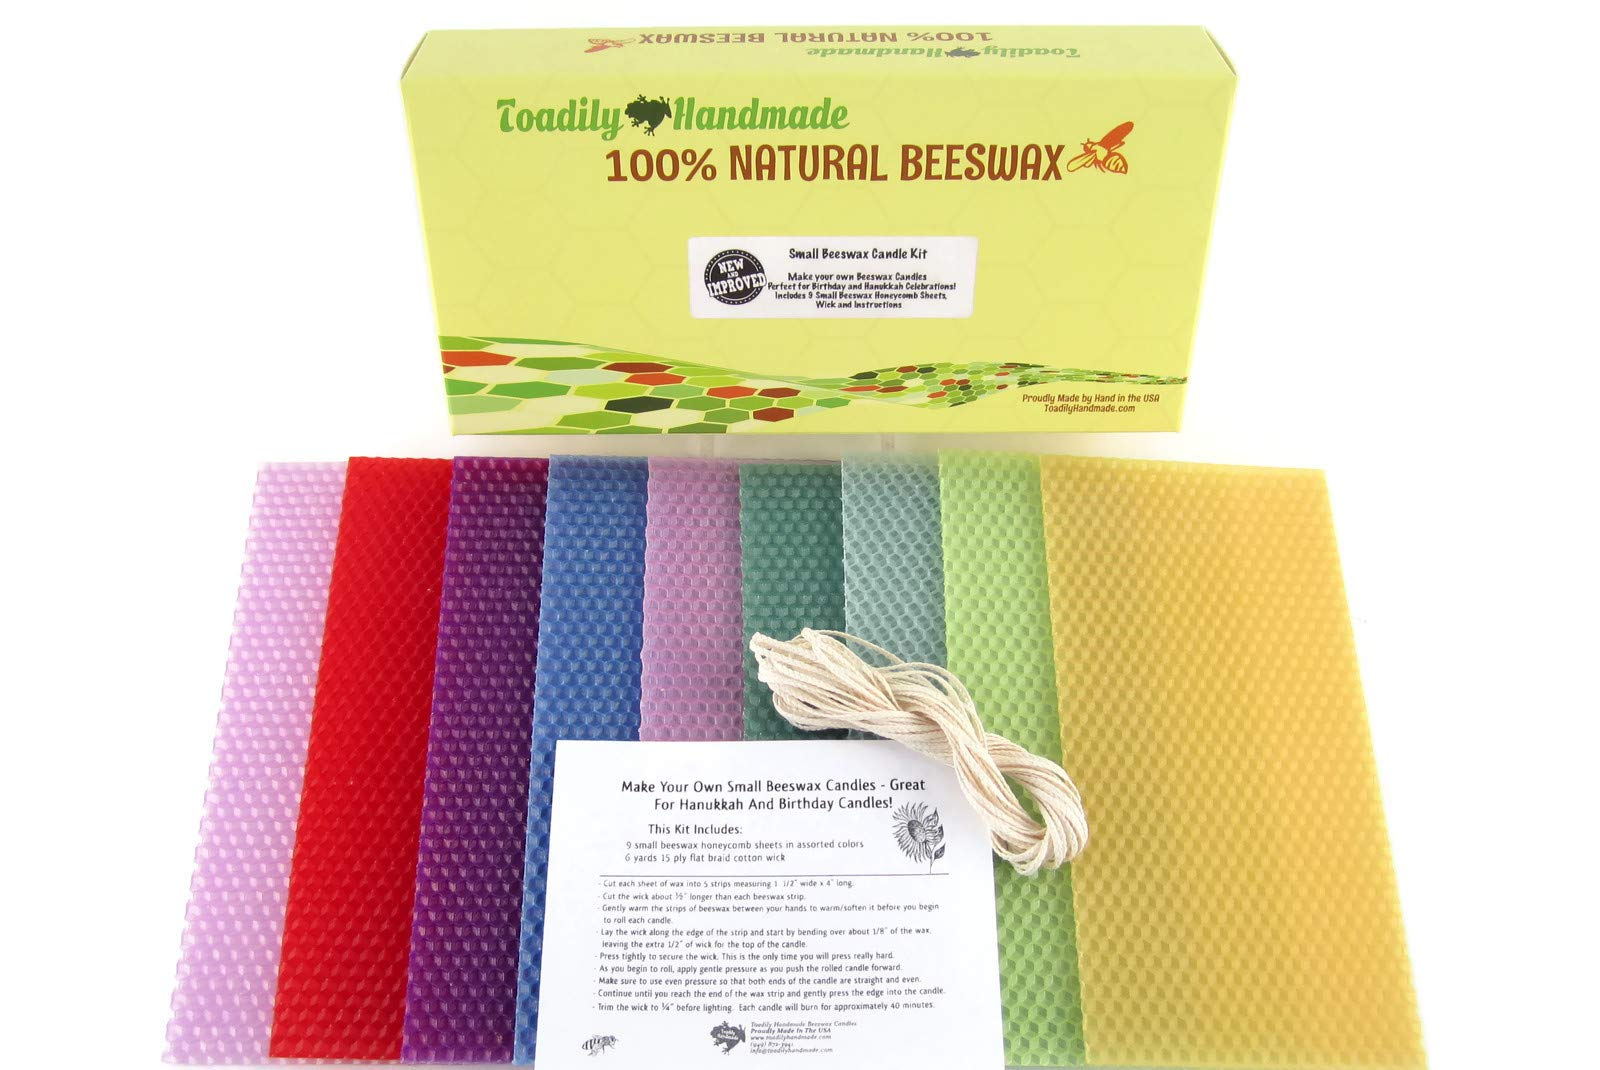 New & Improved Small Beeswax Candle Kit - Perfect for Making Hanukkah or Birthday Candles! Comes in a Beautiful Gift Box!